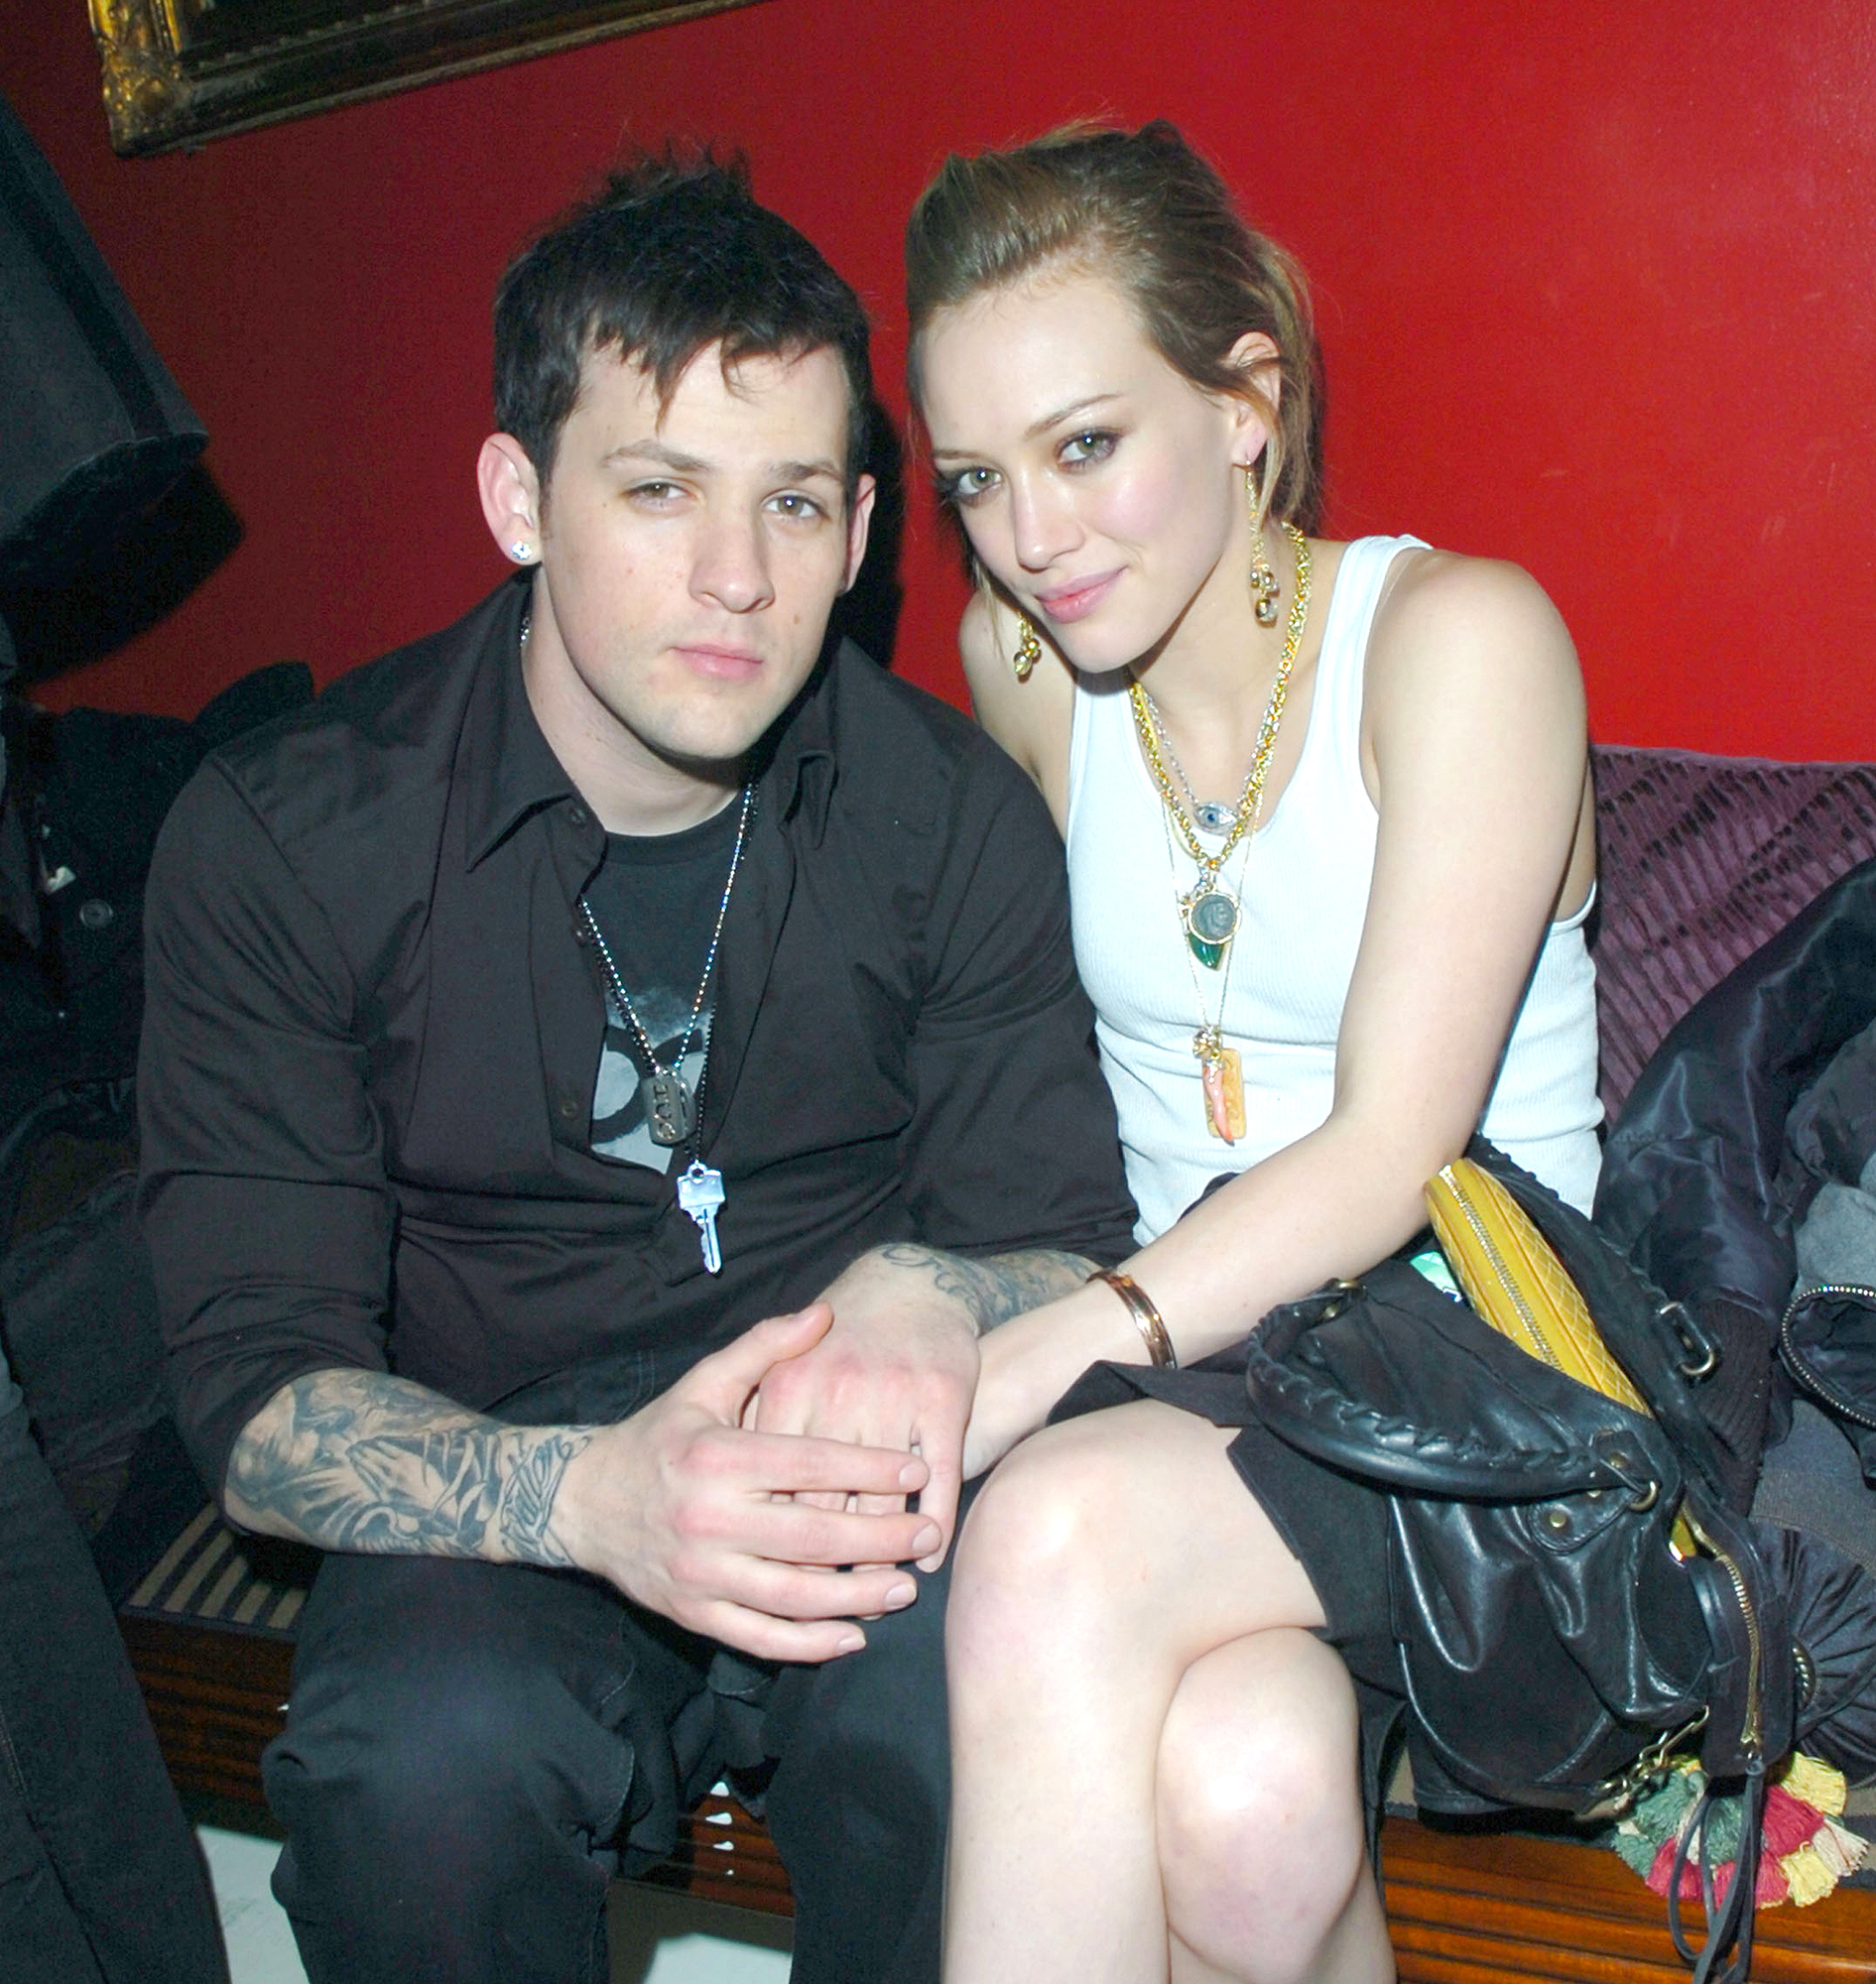 Hilary duff on divorce marriage and monogamy joel madden and hilary duff during nylon celebrates the official opening of boudoir at boudoir in new york city djamilla rosa cochranwireimage junglespirit Gallery